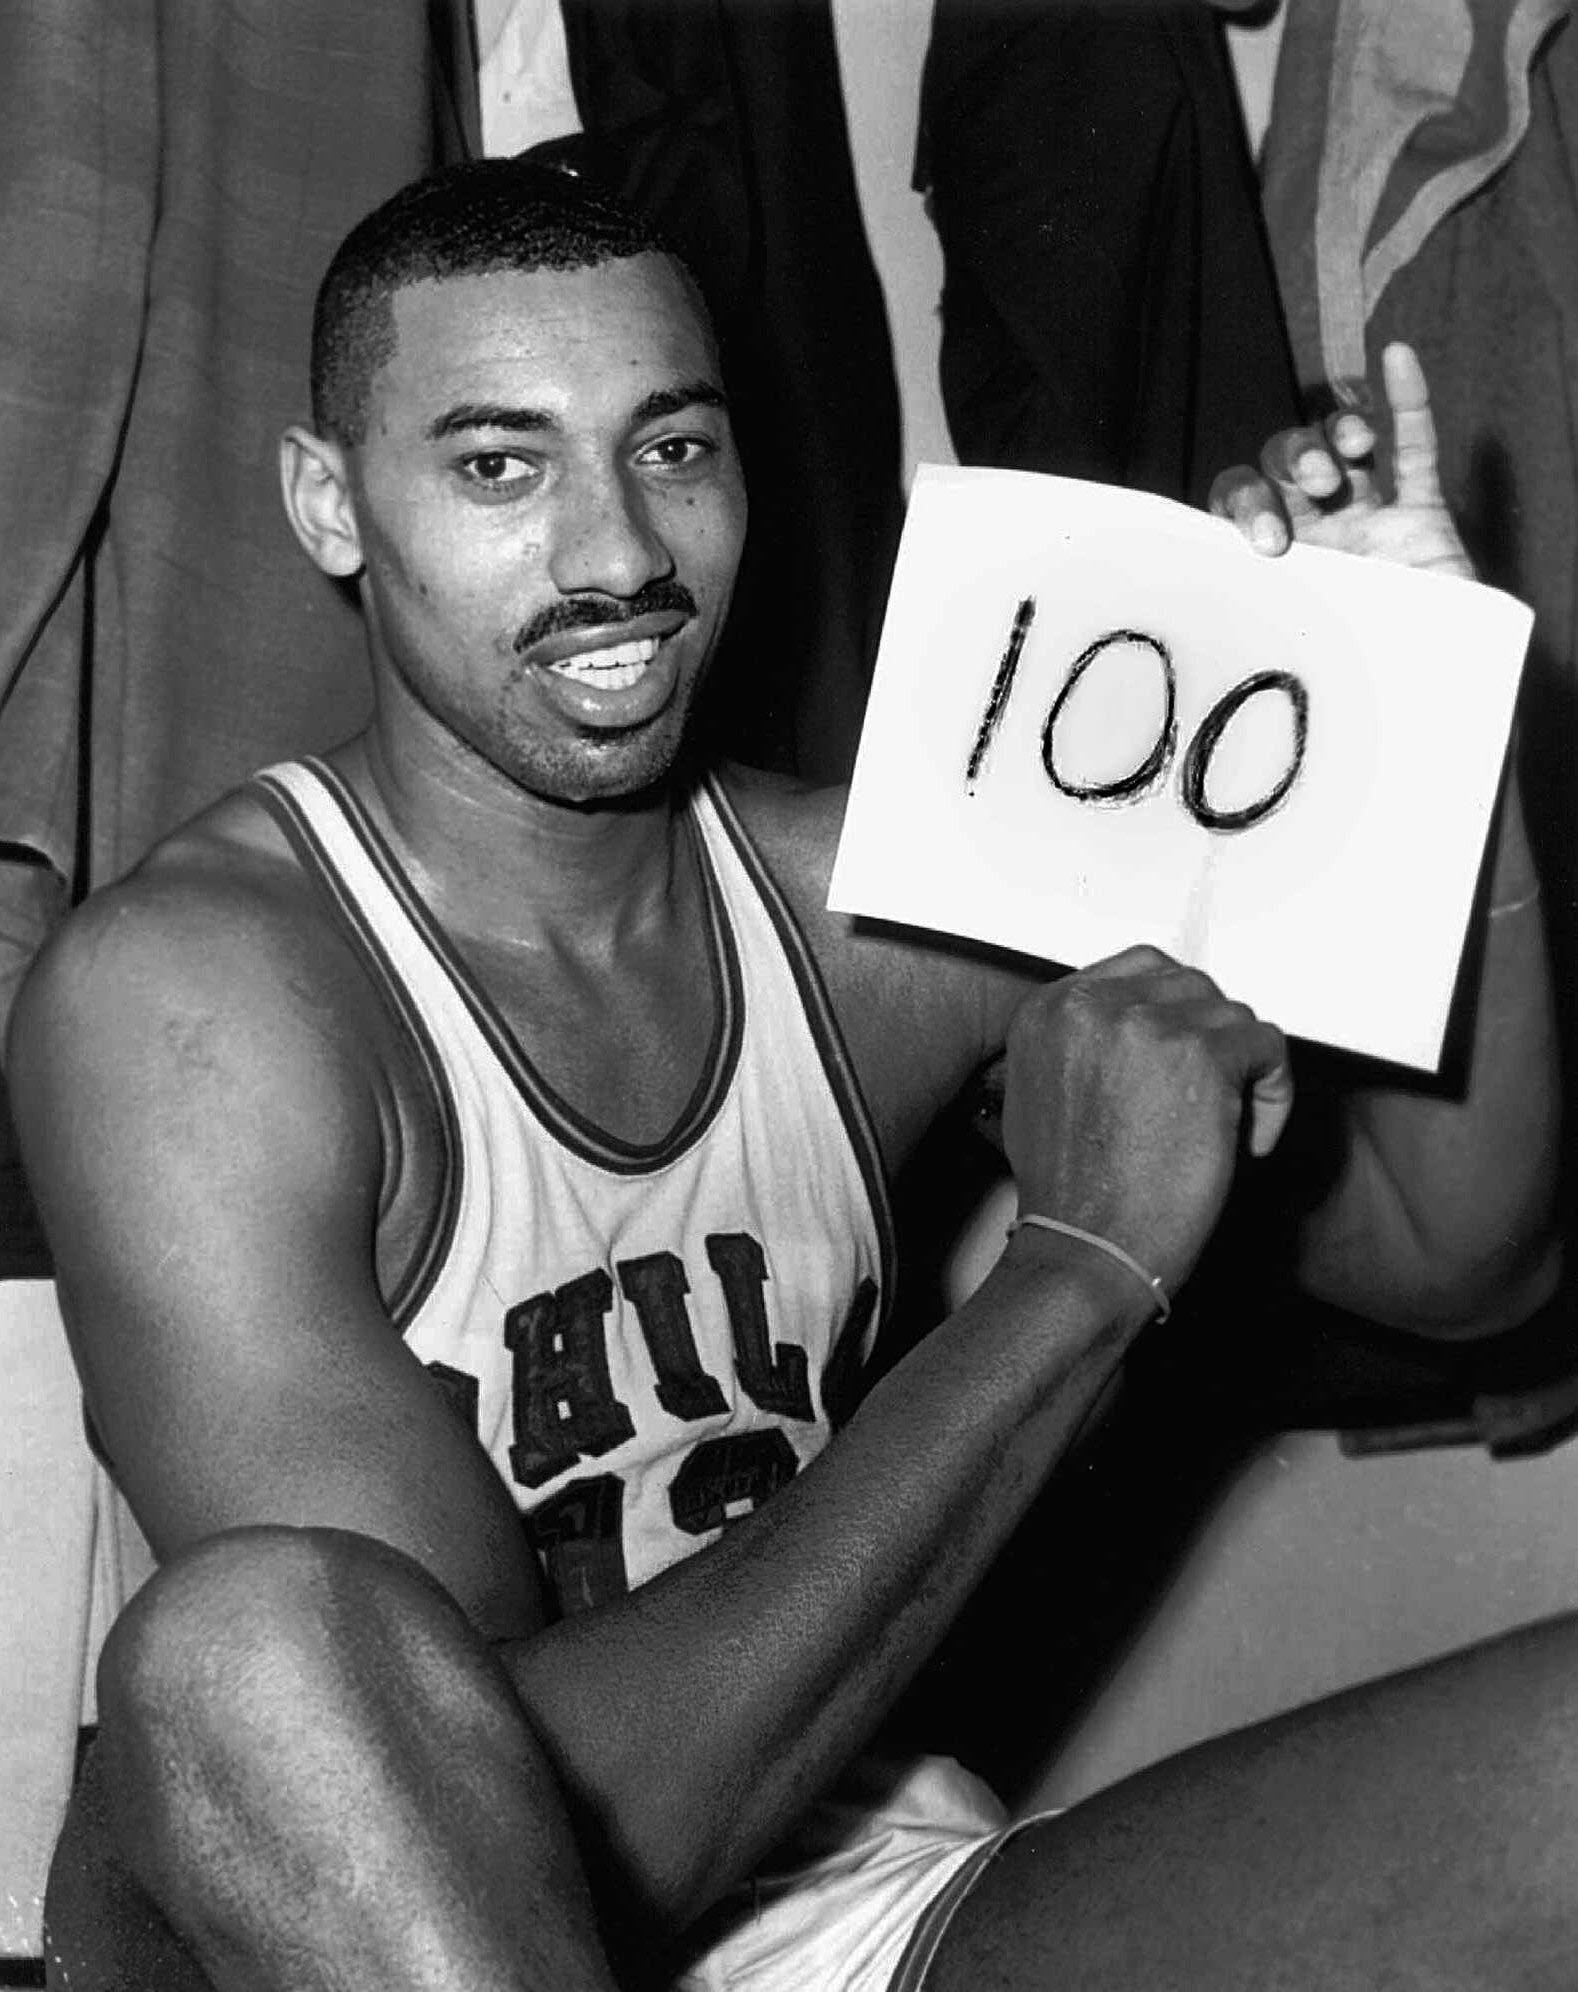 ff30b51e0 (1962) The Philadelphia Warriors  Wilt Chamberlain poses after being the  first NBA player to score 100 points in a single game. I m not sure if that  record ...